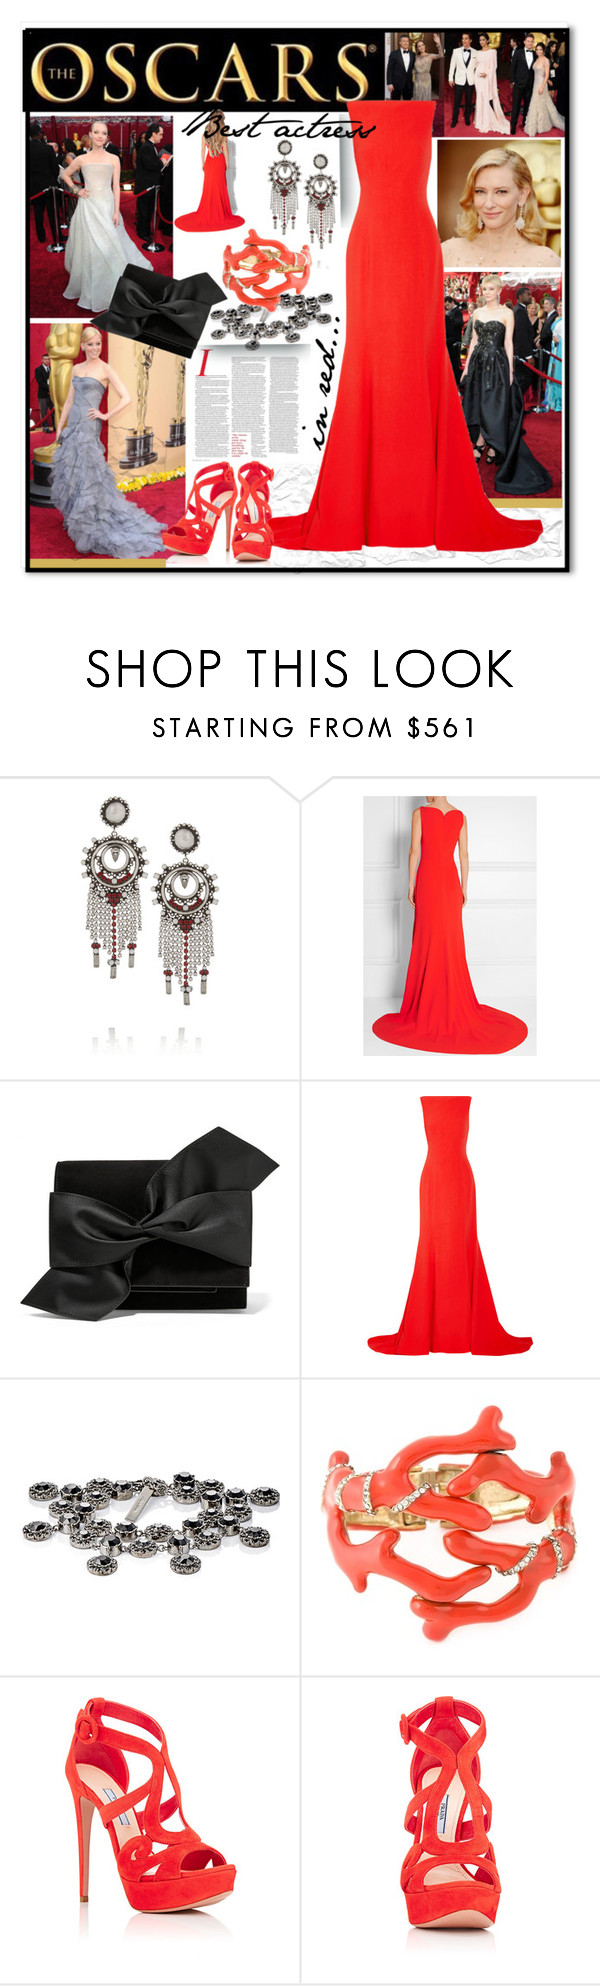 """InRed"" by andrea2andare ❤ liked on Polyvore featuring DANNIJO, Oscar de la Renta, Victoria Beckham, Givenchy, Prada, polyvoreeditorial and oscarfashion"